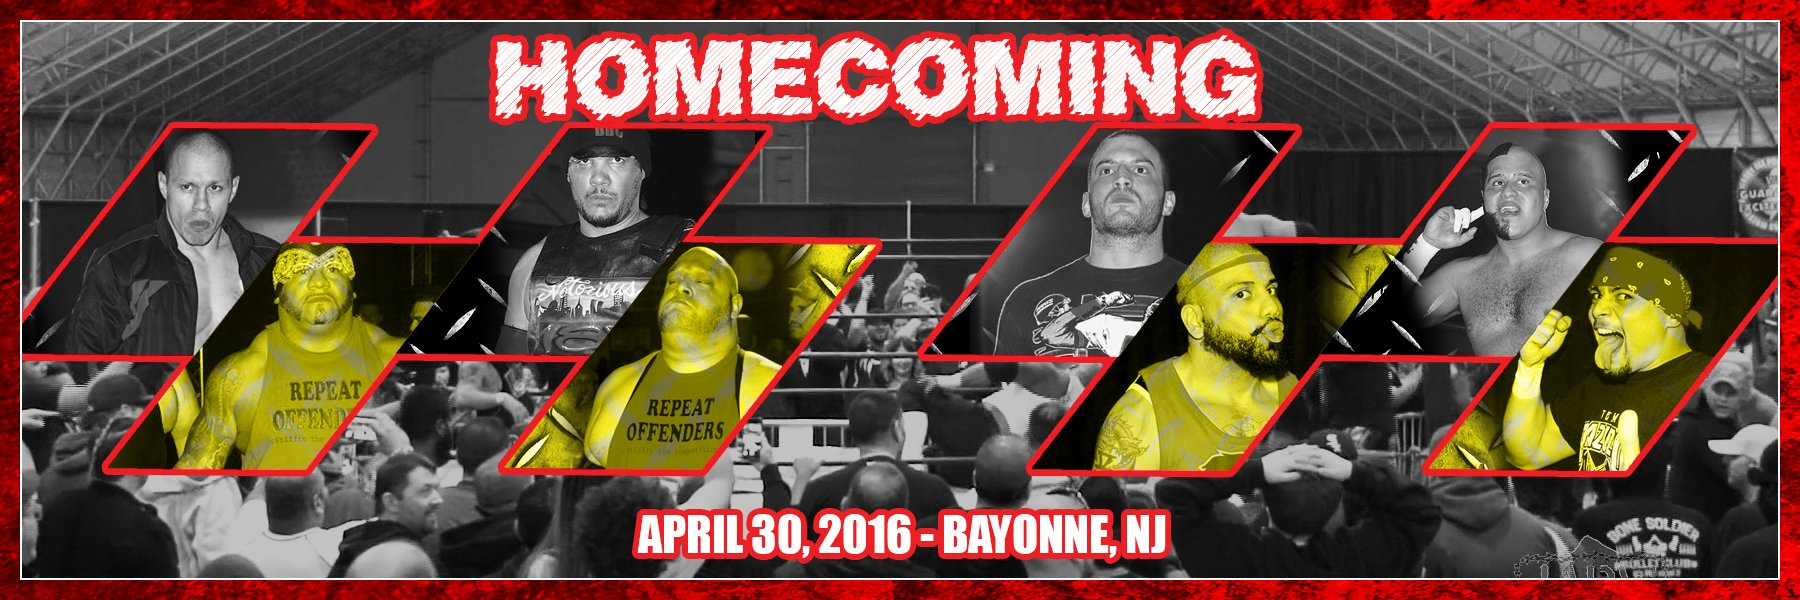 Watch Homecoming to witness Fat Franks Suicidal Games and More!